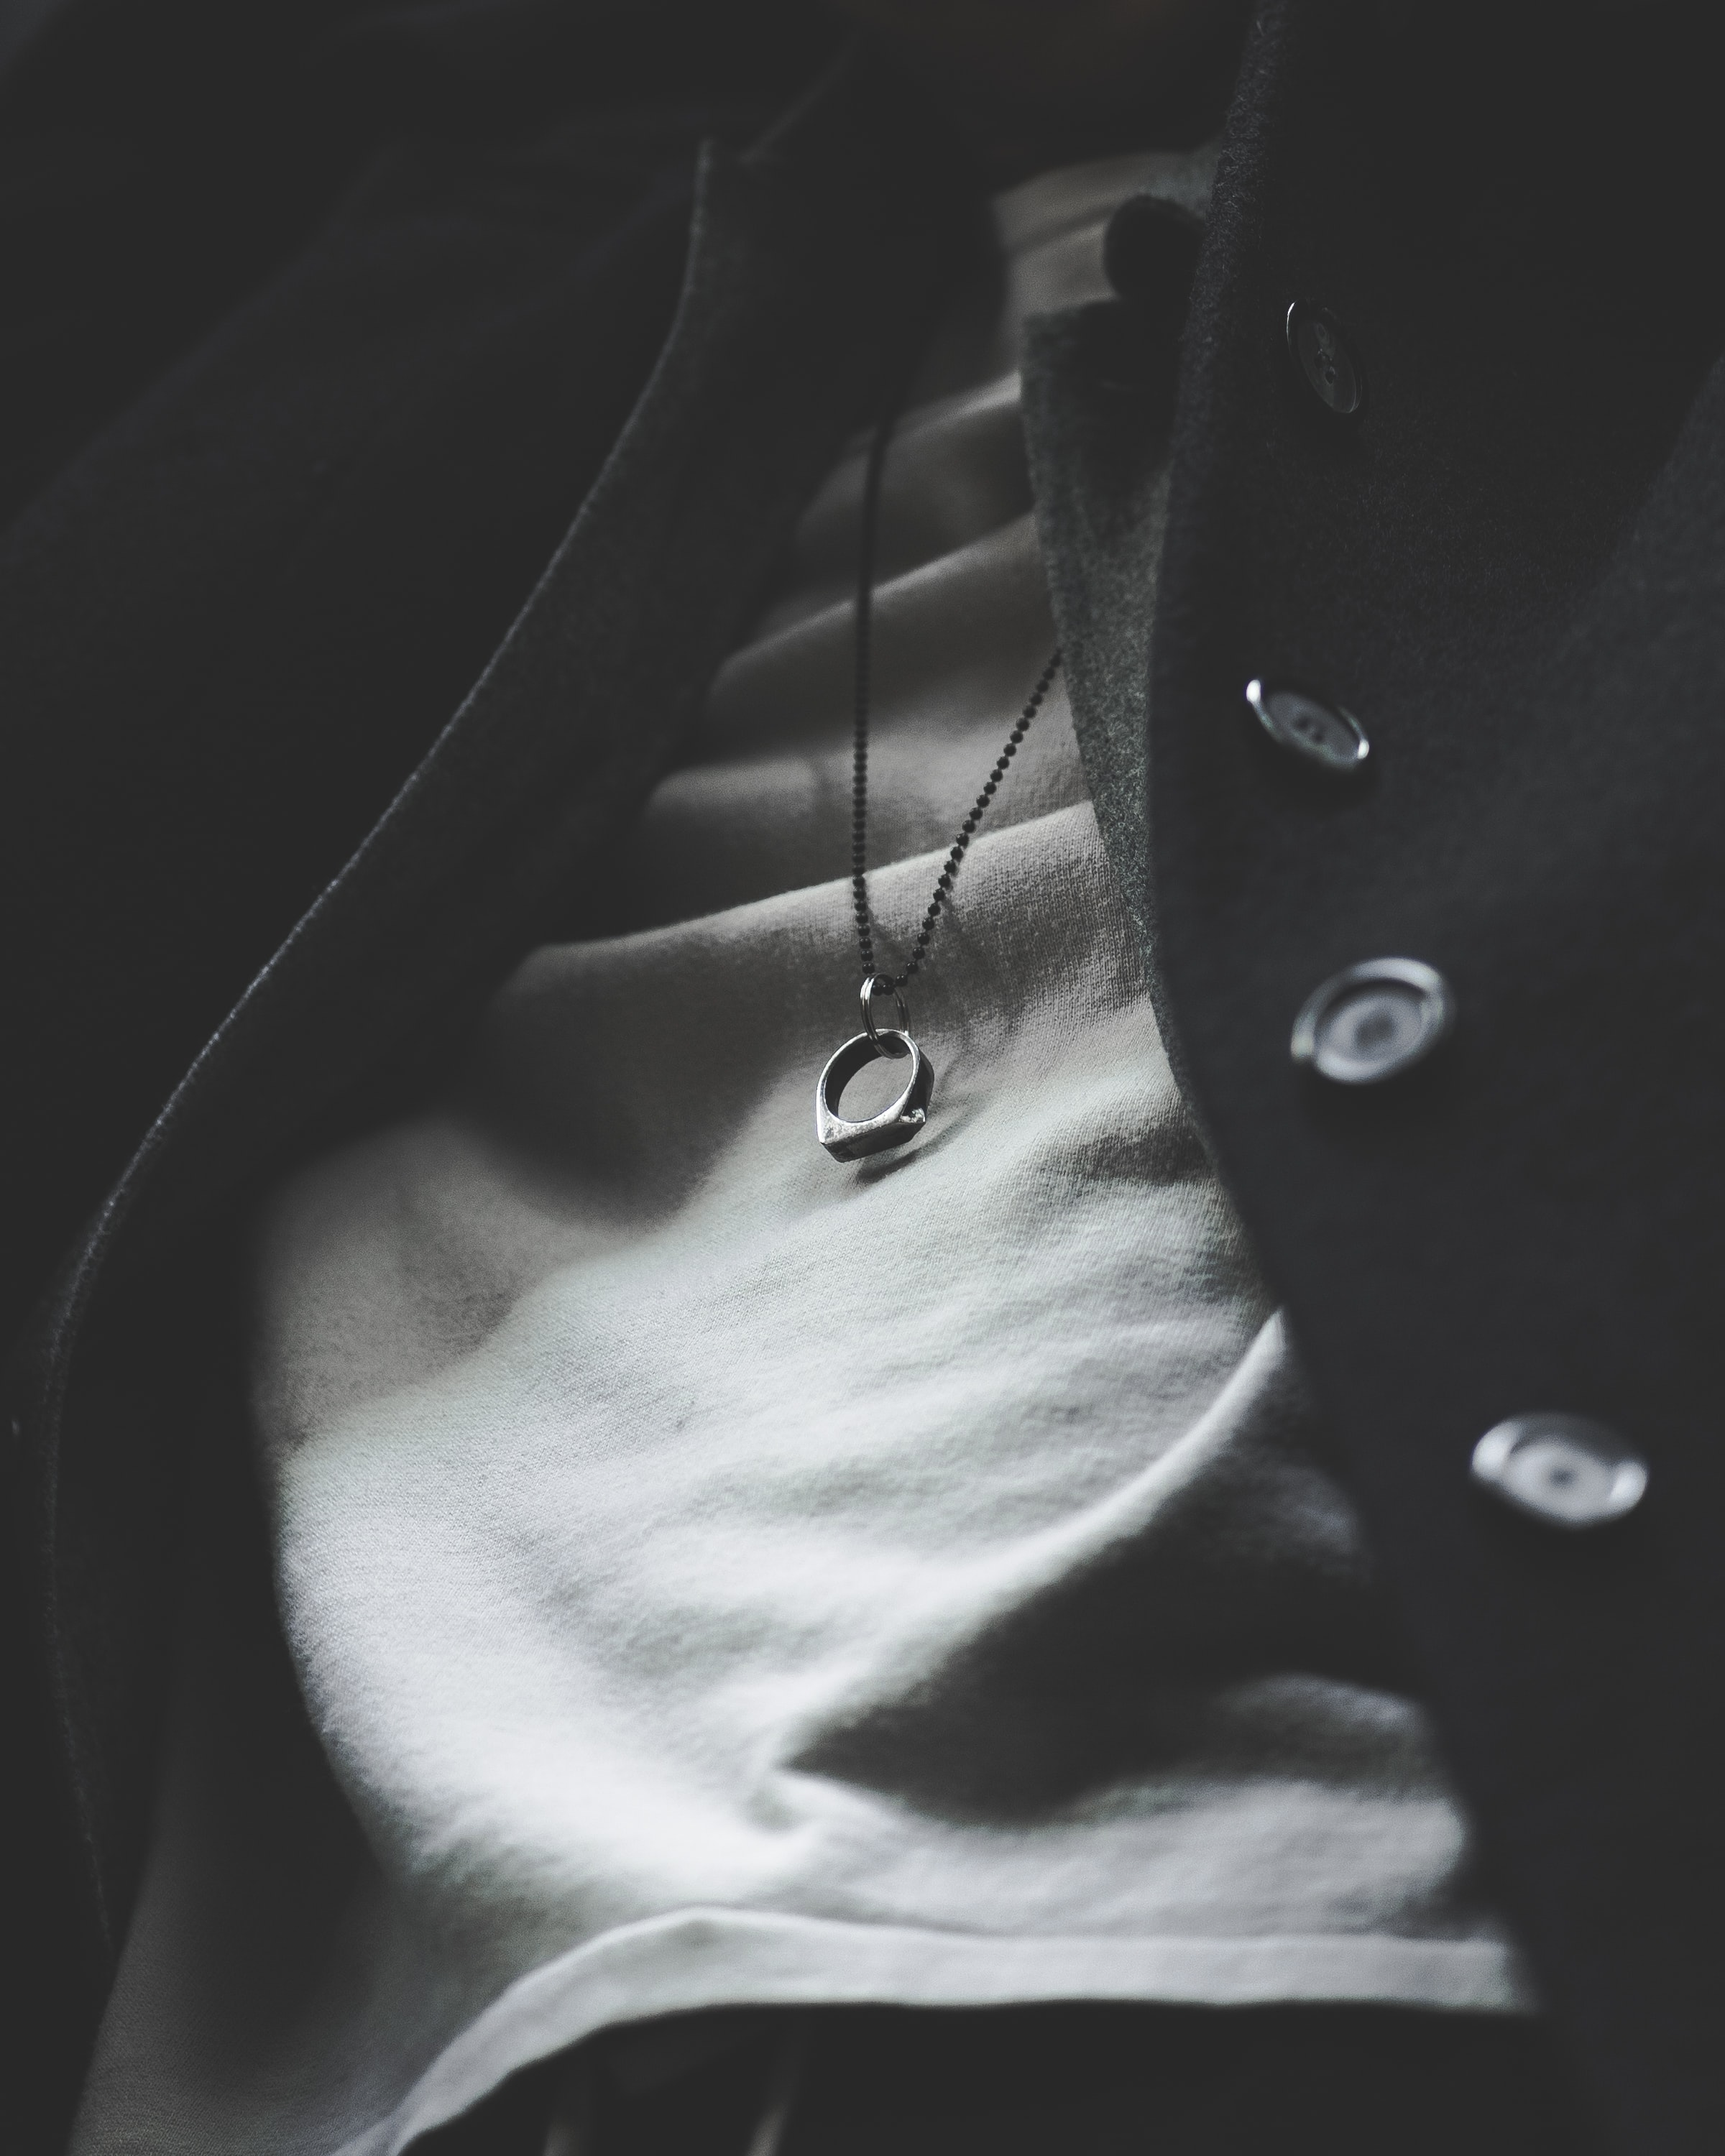 person wearing silver-colored ring pendant necklace in closeup photography